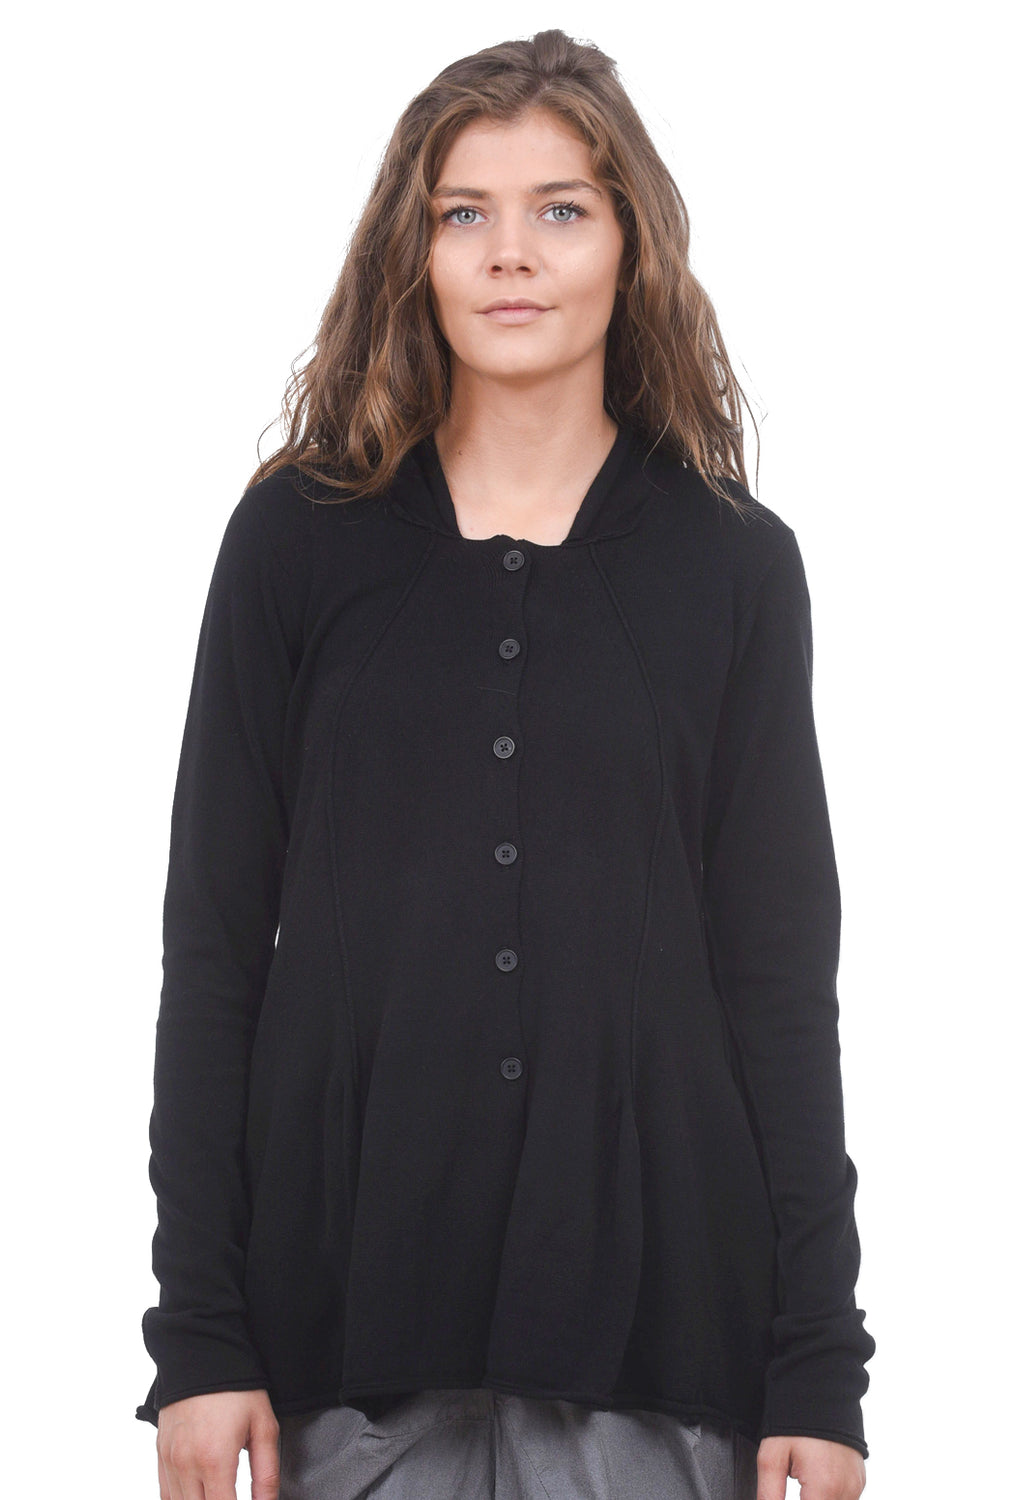 Rundholz Black Label Shapely Knit Seamed Sweater, Black